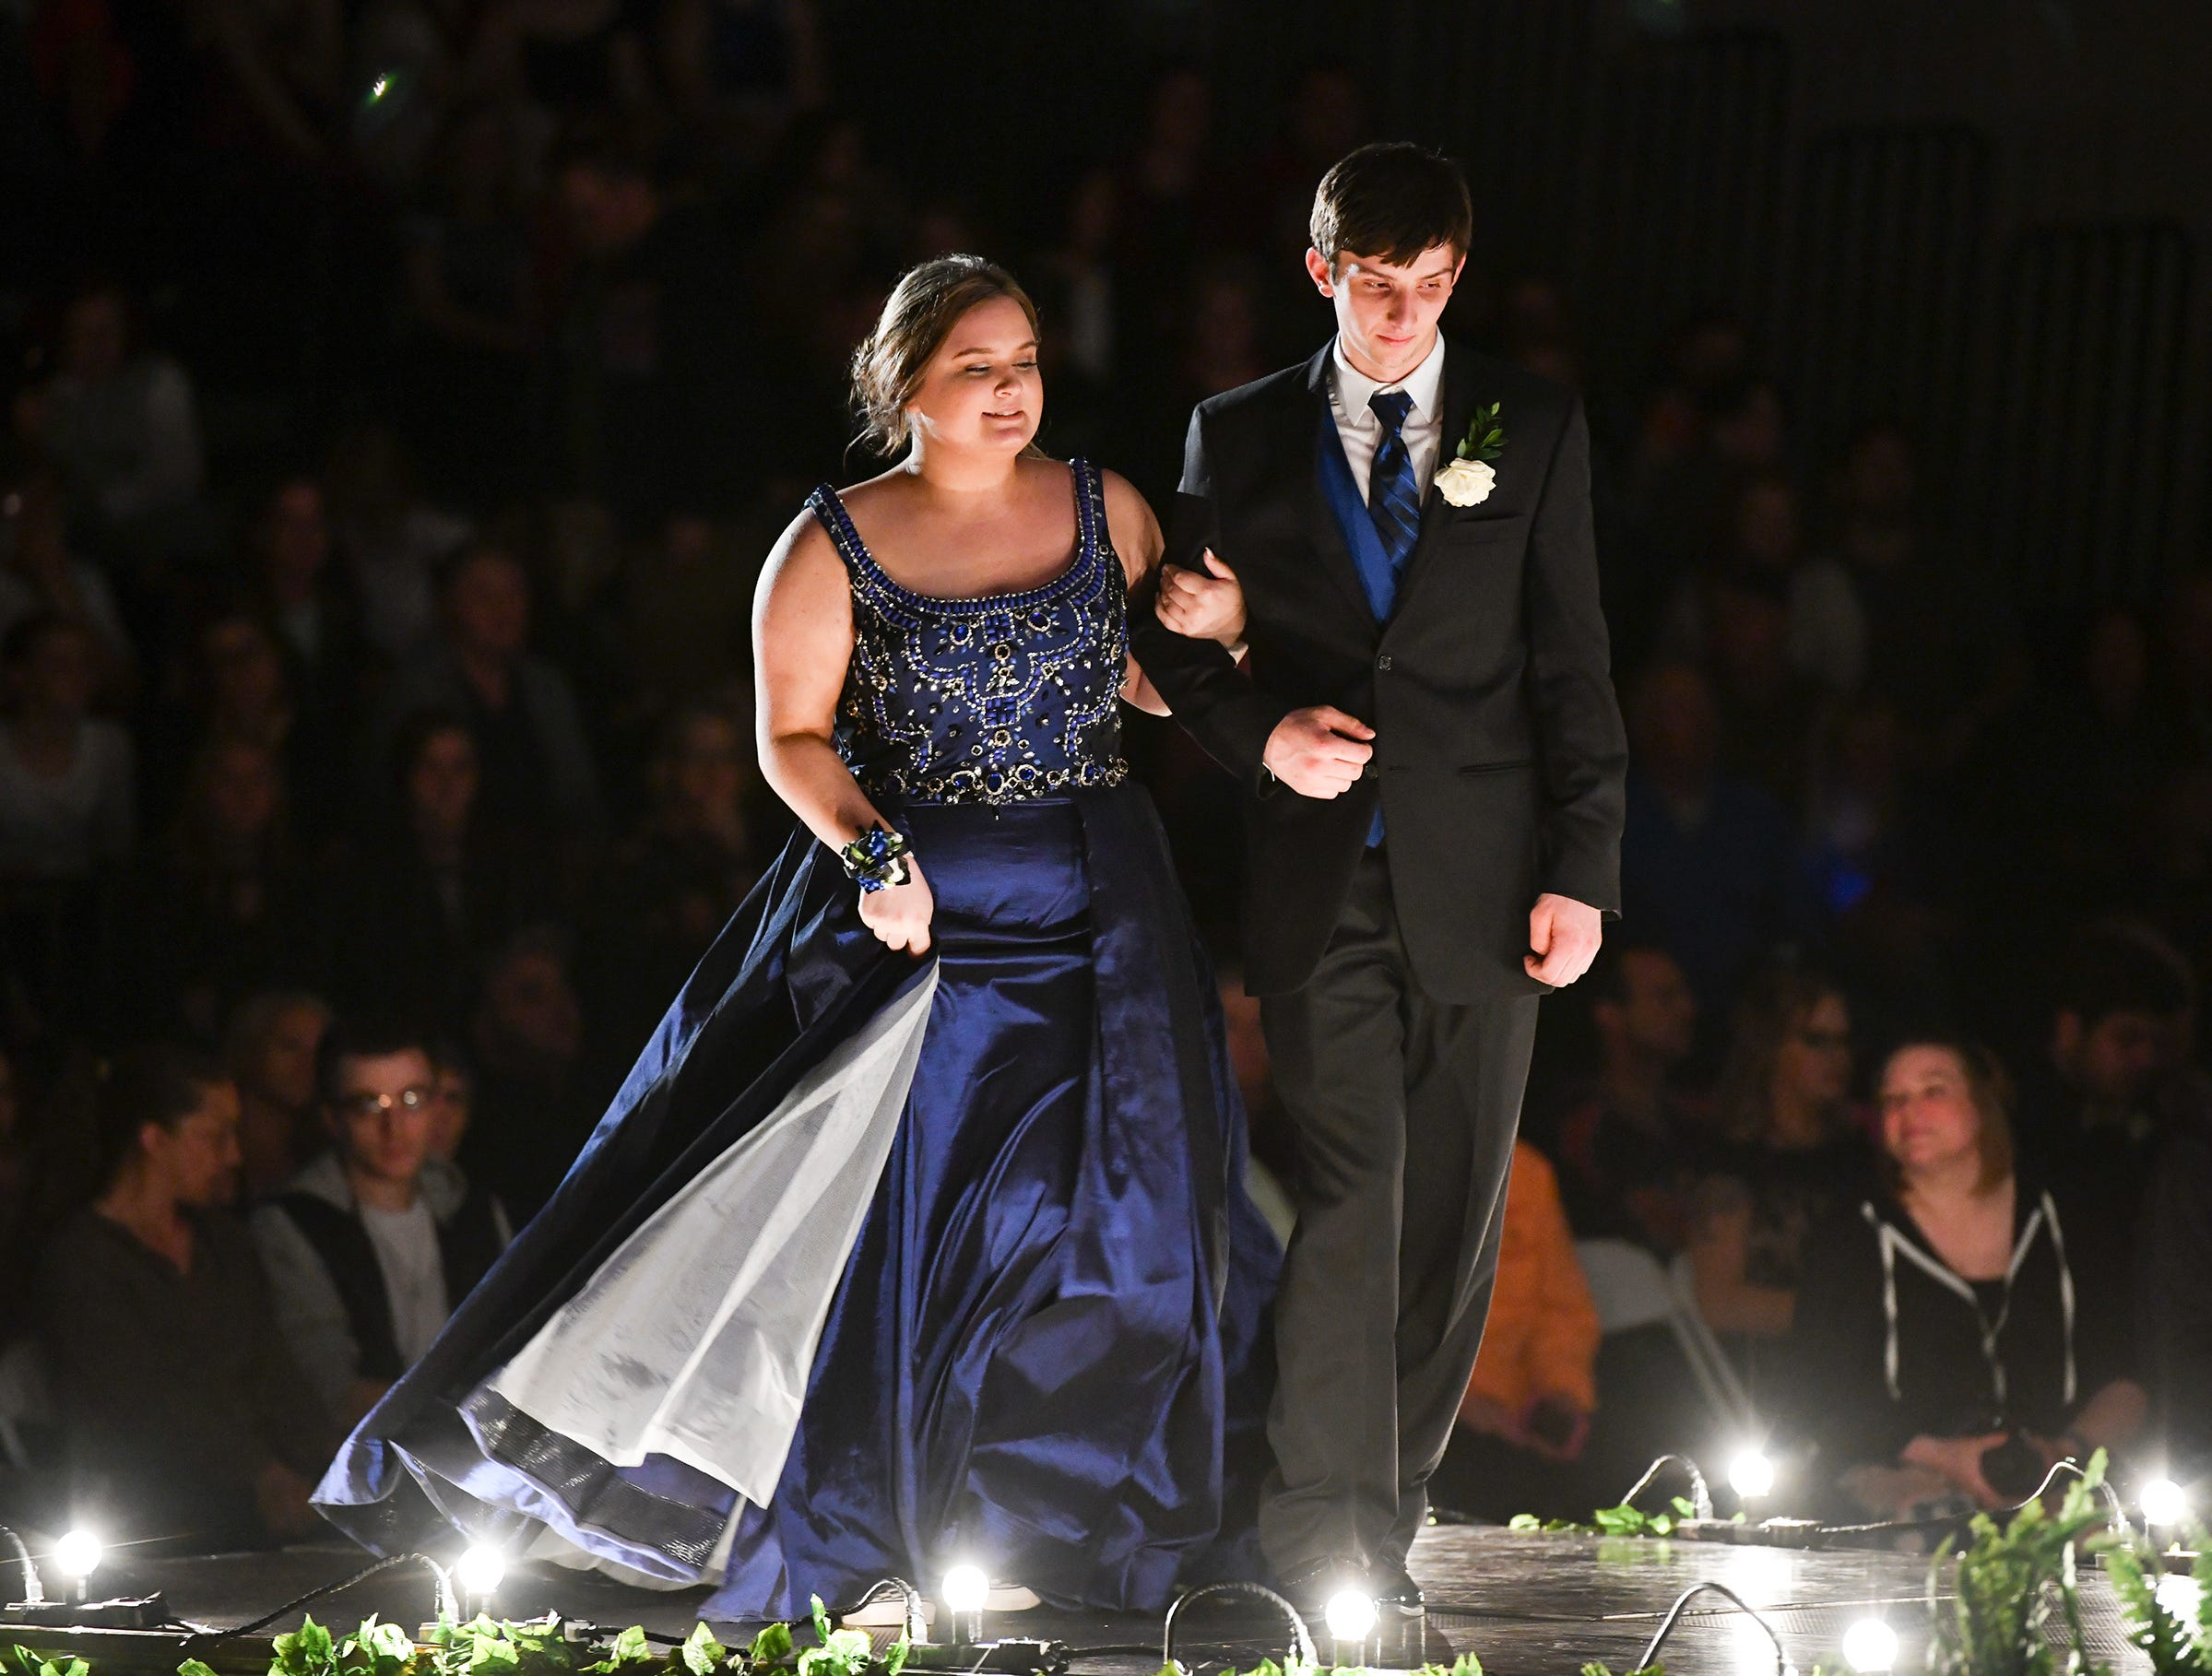 A couple takes their turn at prom grand march.